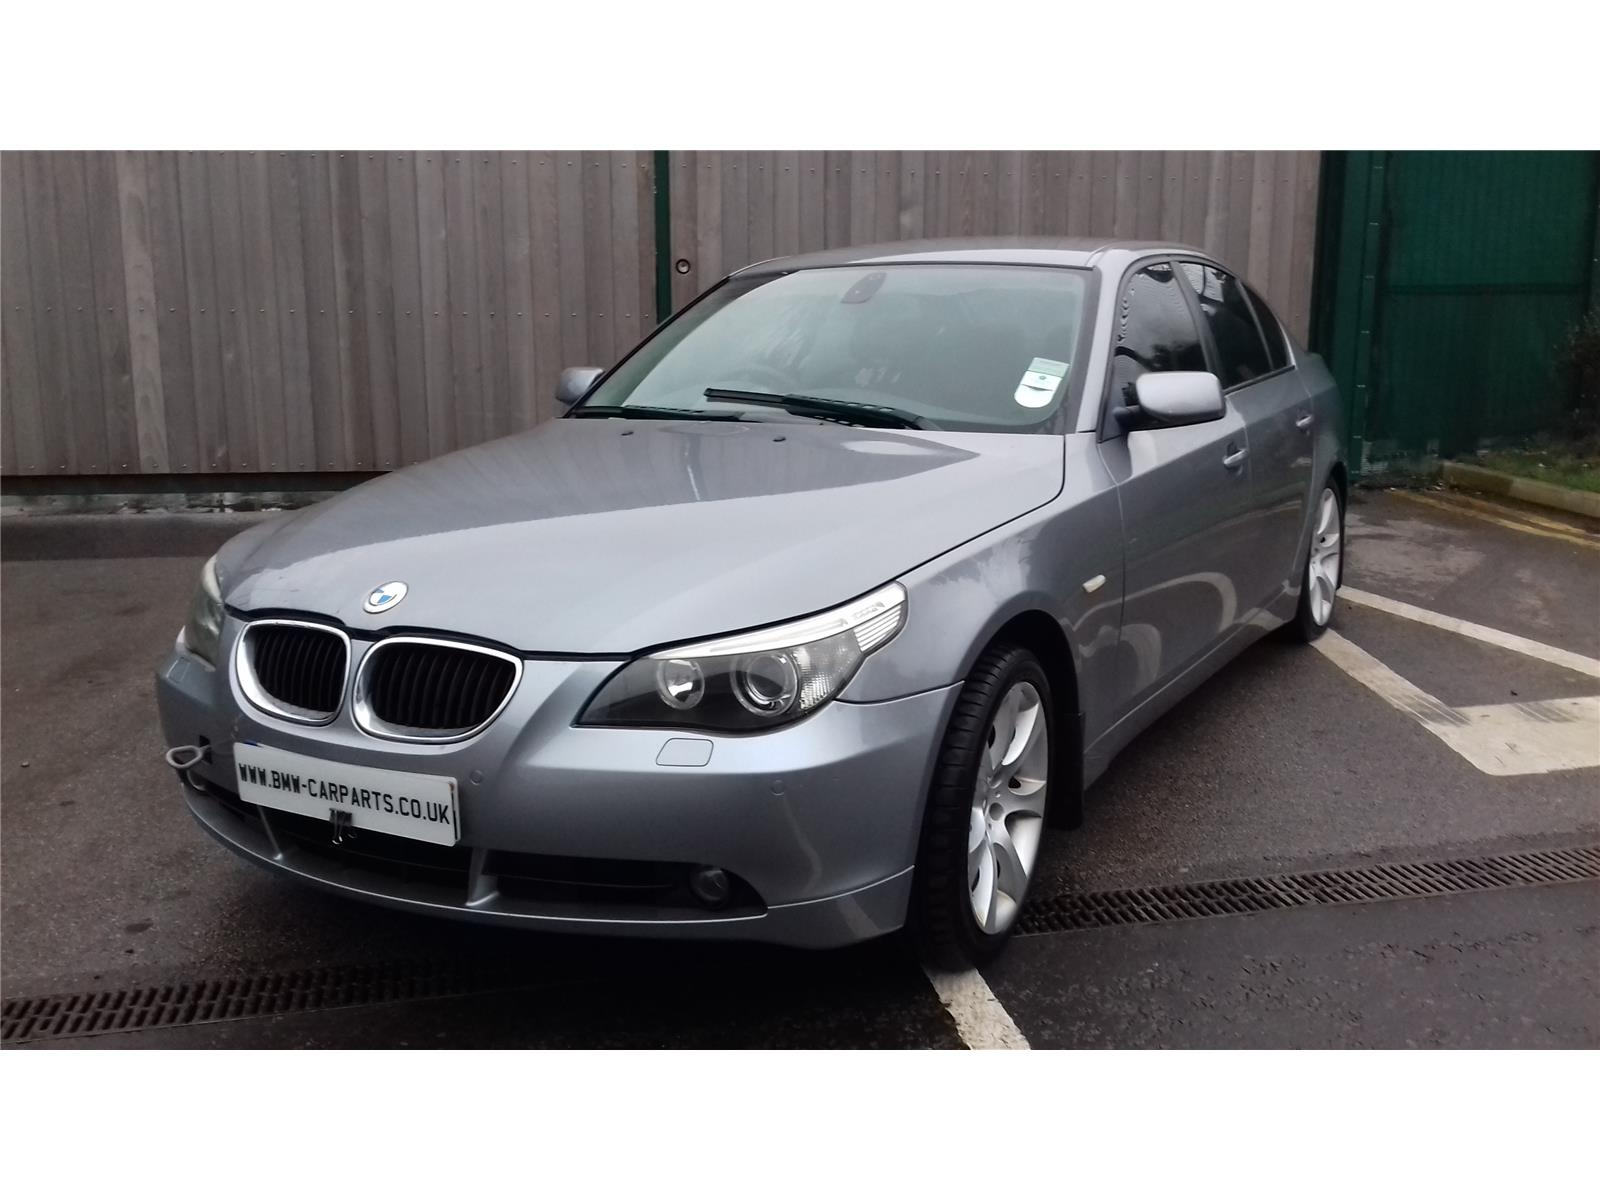 2004 bmw 5 series 530i se 4 door saloon petrol automatic breaking for used and spare parts. Black Bedroom Furniture Sets. Home Design Ideas